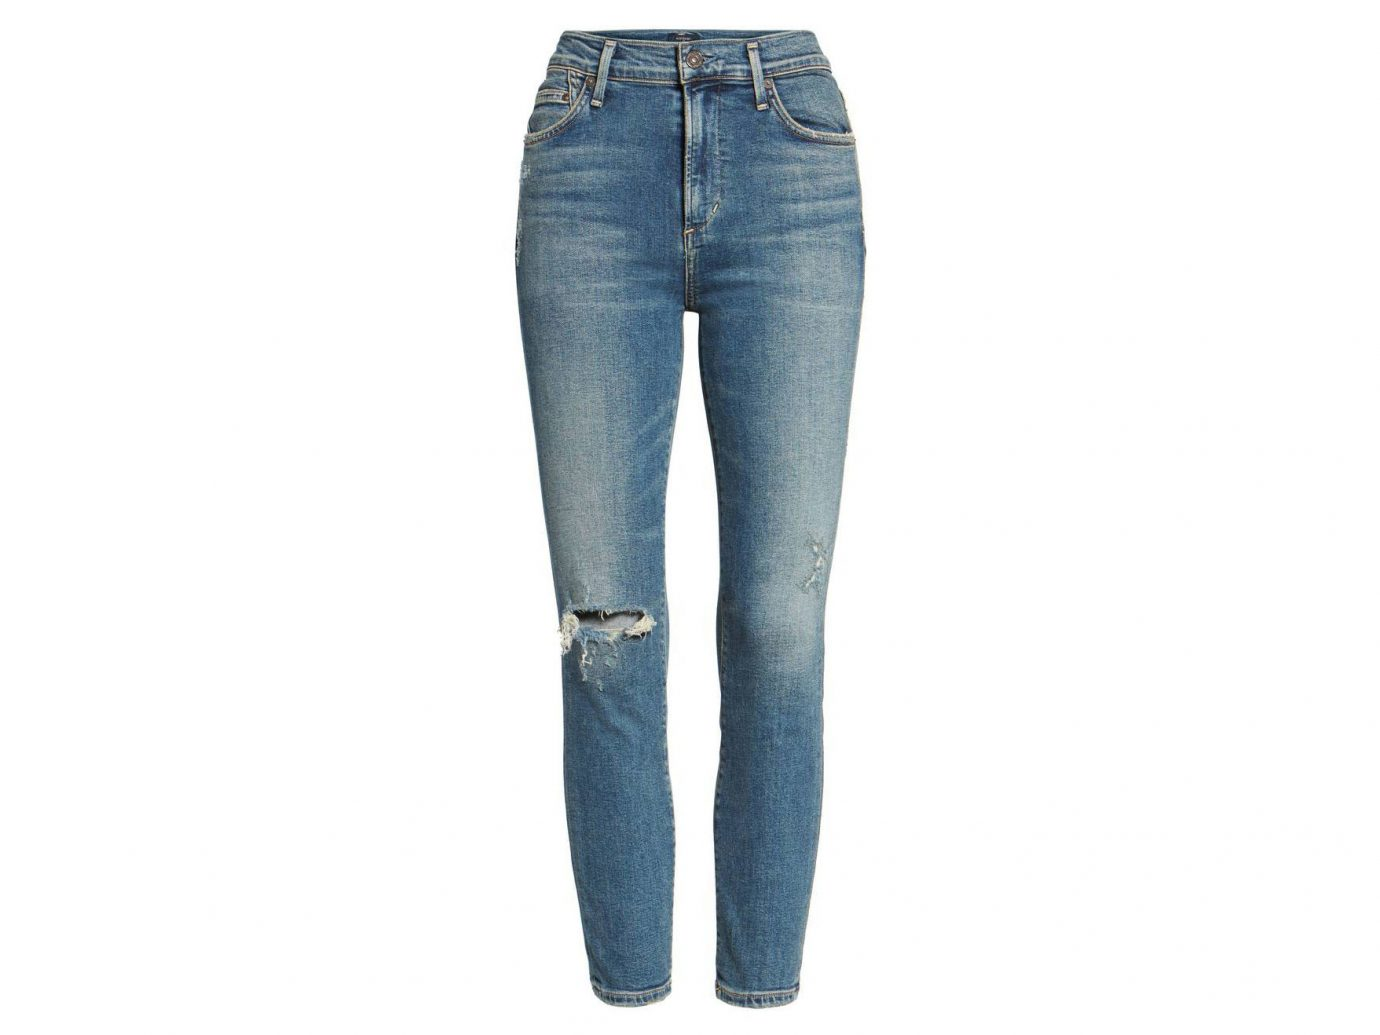 City NYC Style + Design Travel Shop clothing trouser denim person jeans pocket waist trousers posing